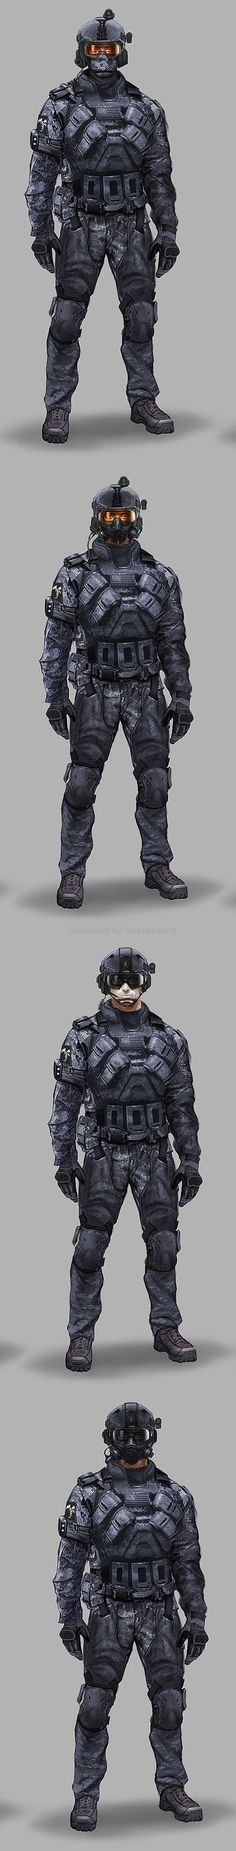 Early Black Ops 2 Concepts_ASSAULT_head_alts by Eric Chiang